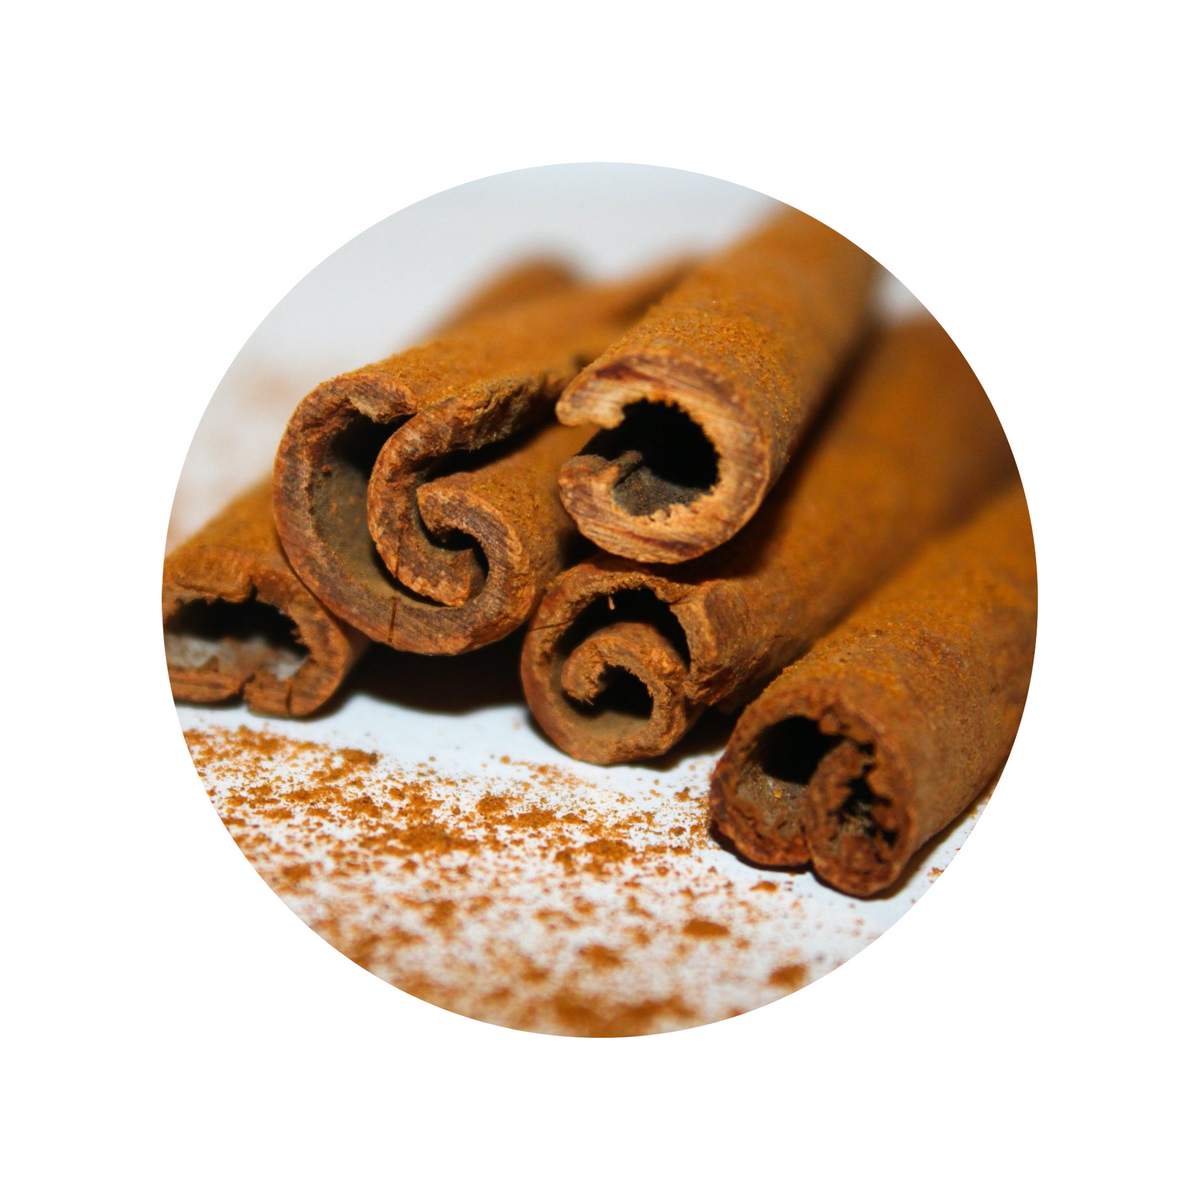 Cassia Cinnamon sticks 3 inches